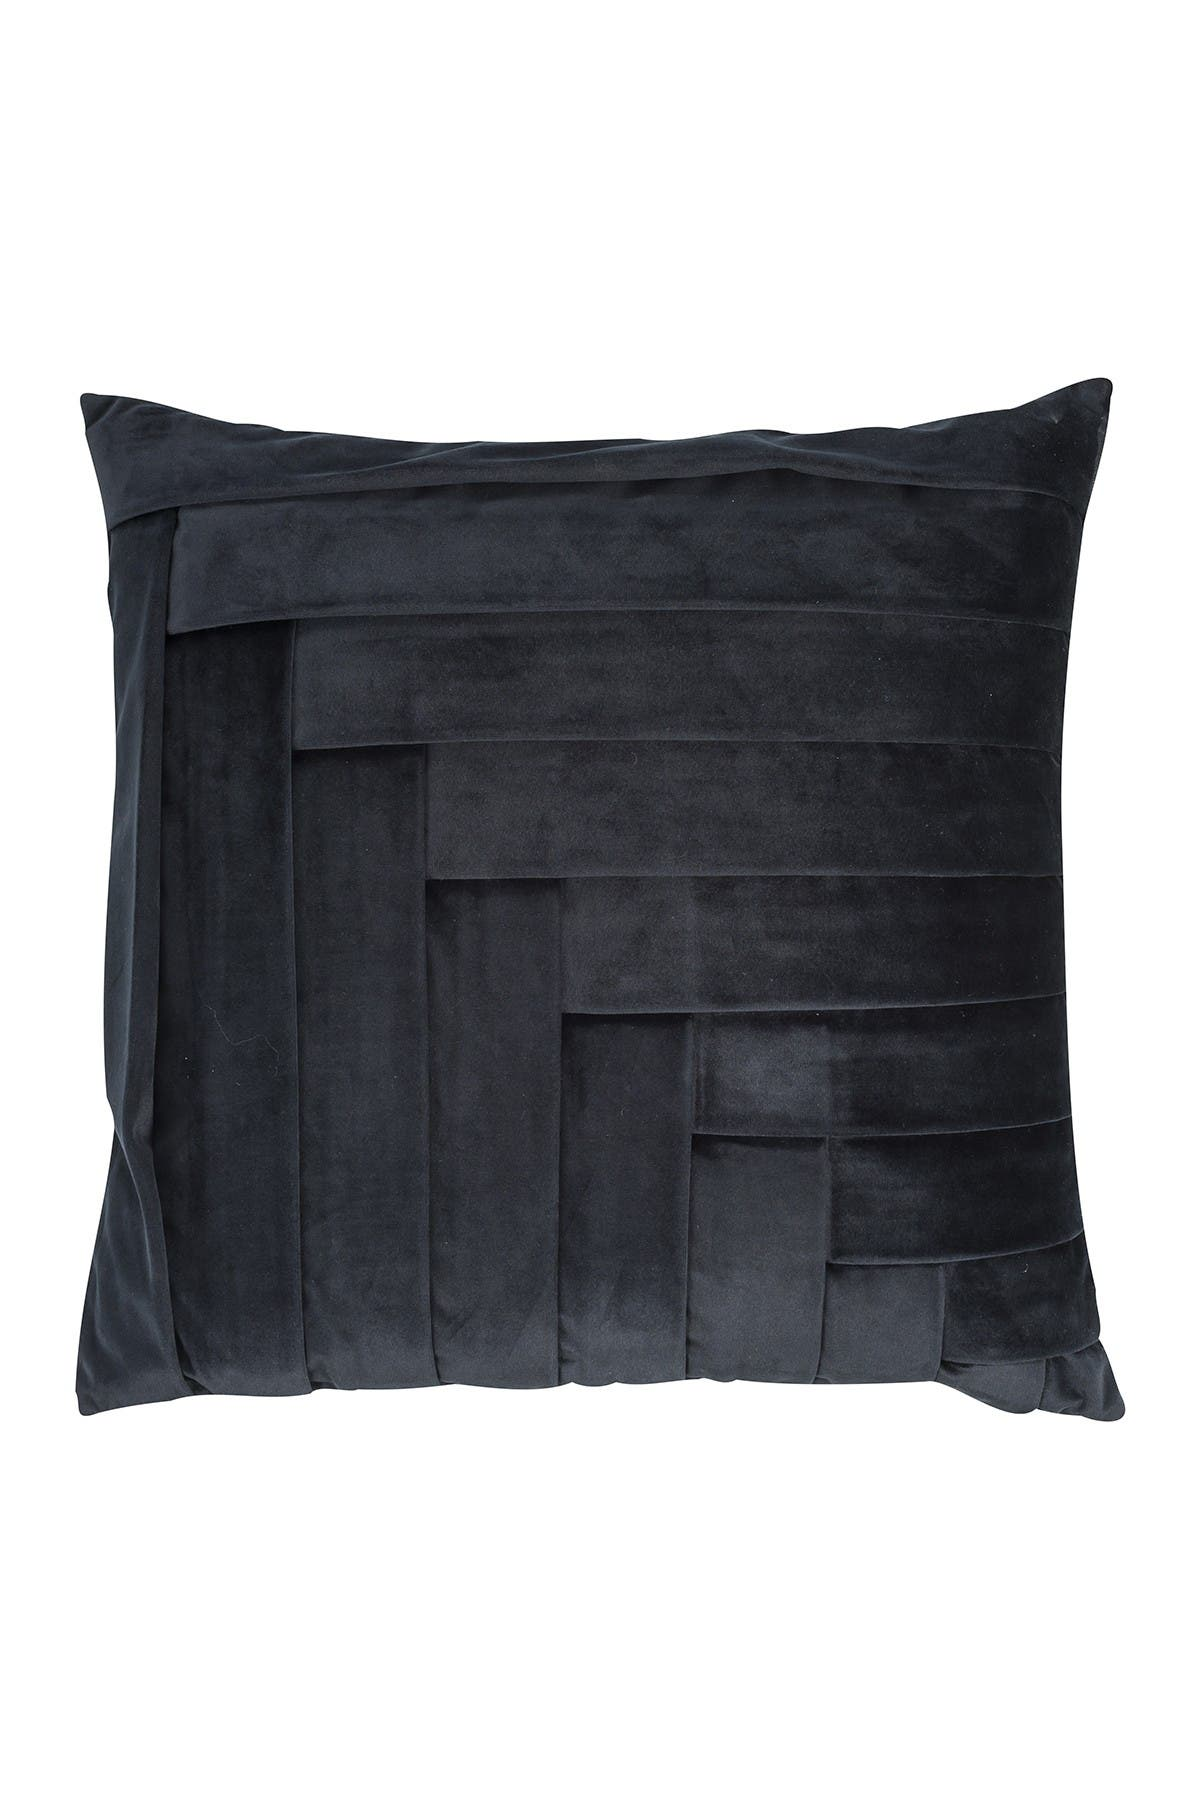 Image of EIGHTMOOD Tiered Throw Pillow - Black